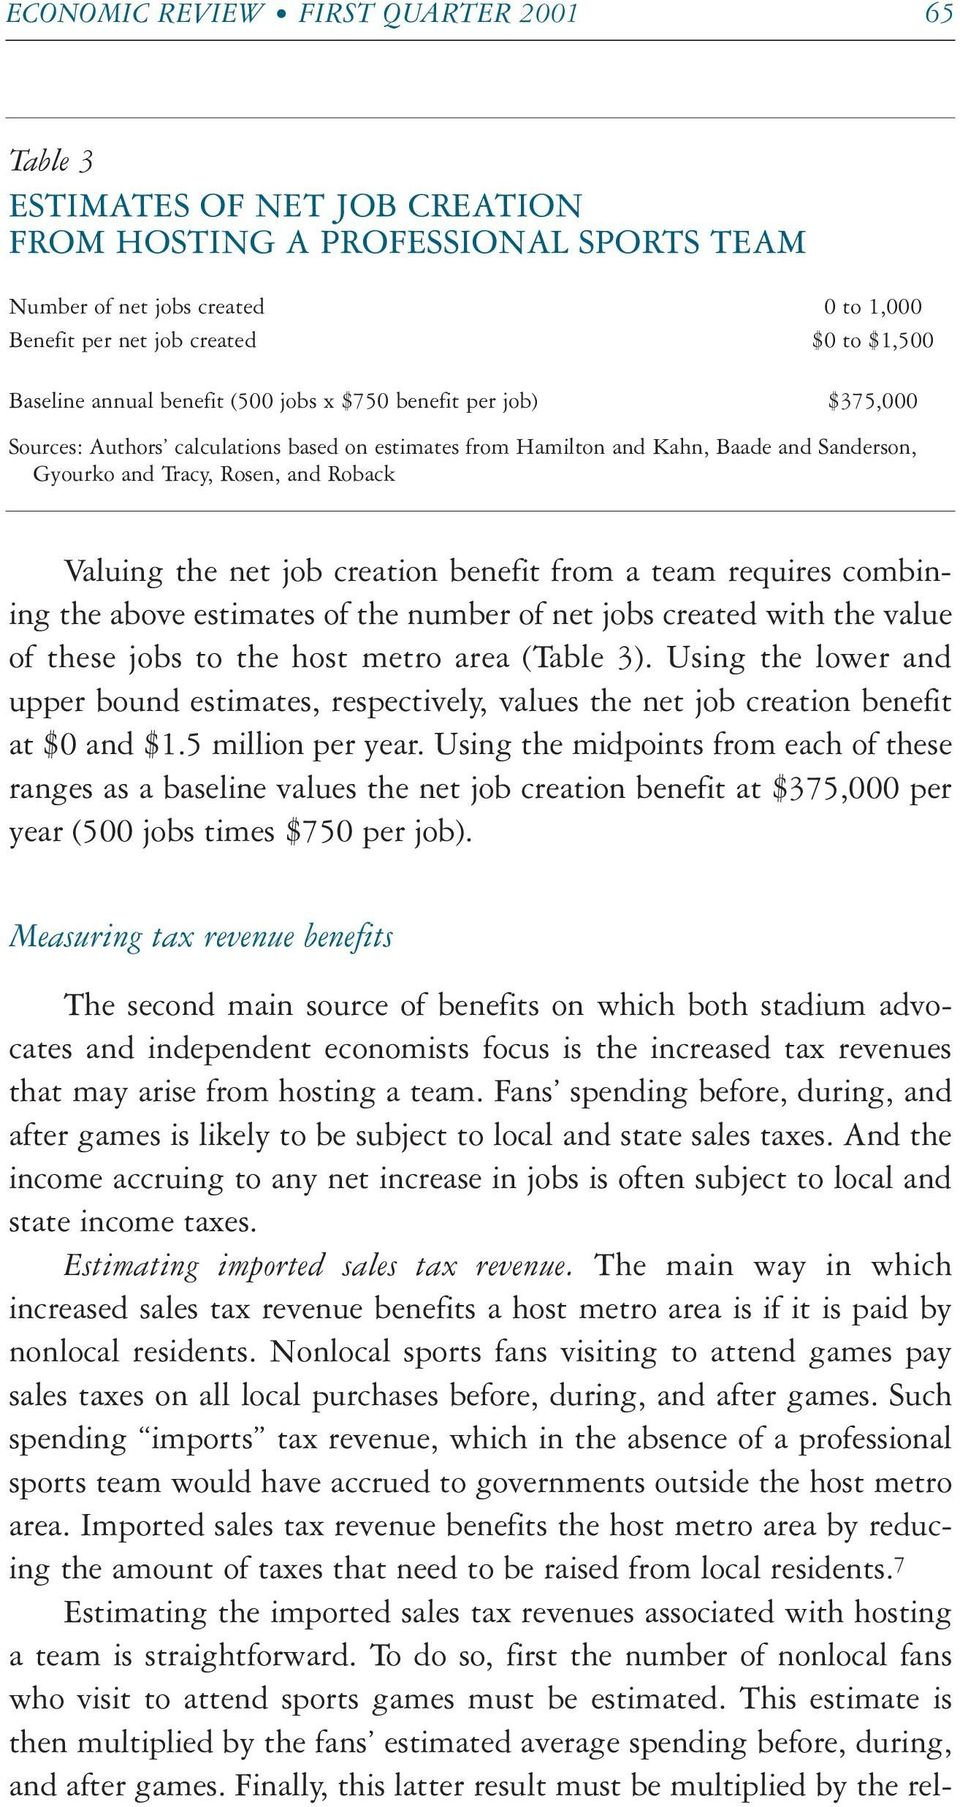 Valuing the net job creation benefit from a team requires combining the above estimates of the number of net jobs created with the value of these jobs to the host metro area (Table 3).